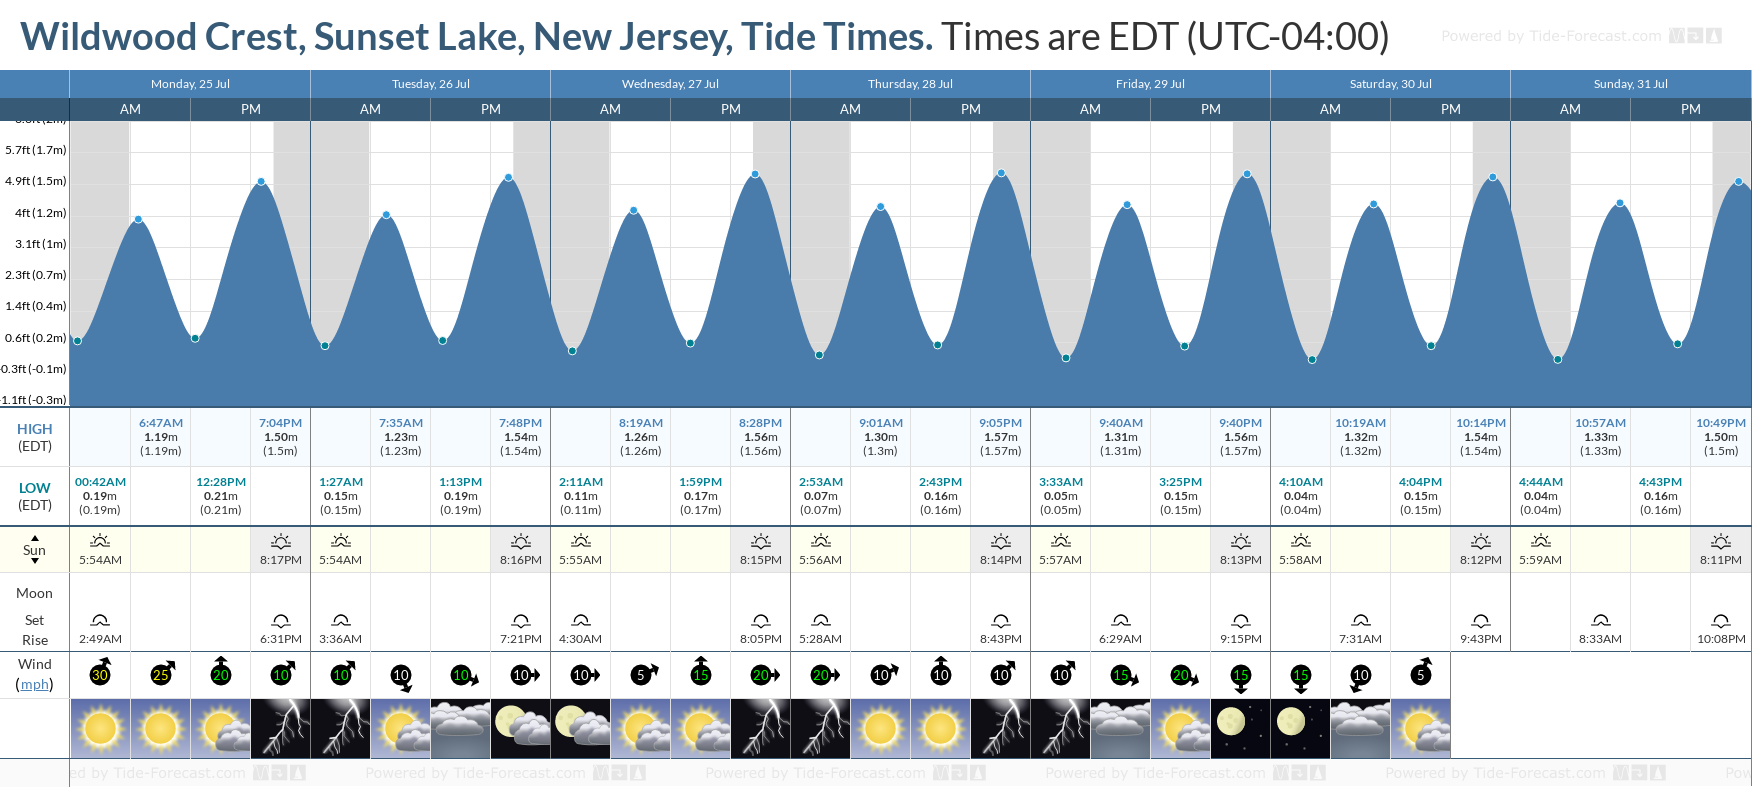 Wildwood Crest, Sunset Lake, New Jersey Tide Chart including high and low tide tide times for the next 7 days